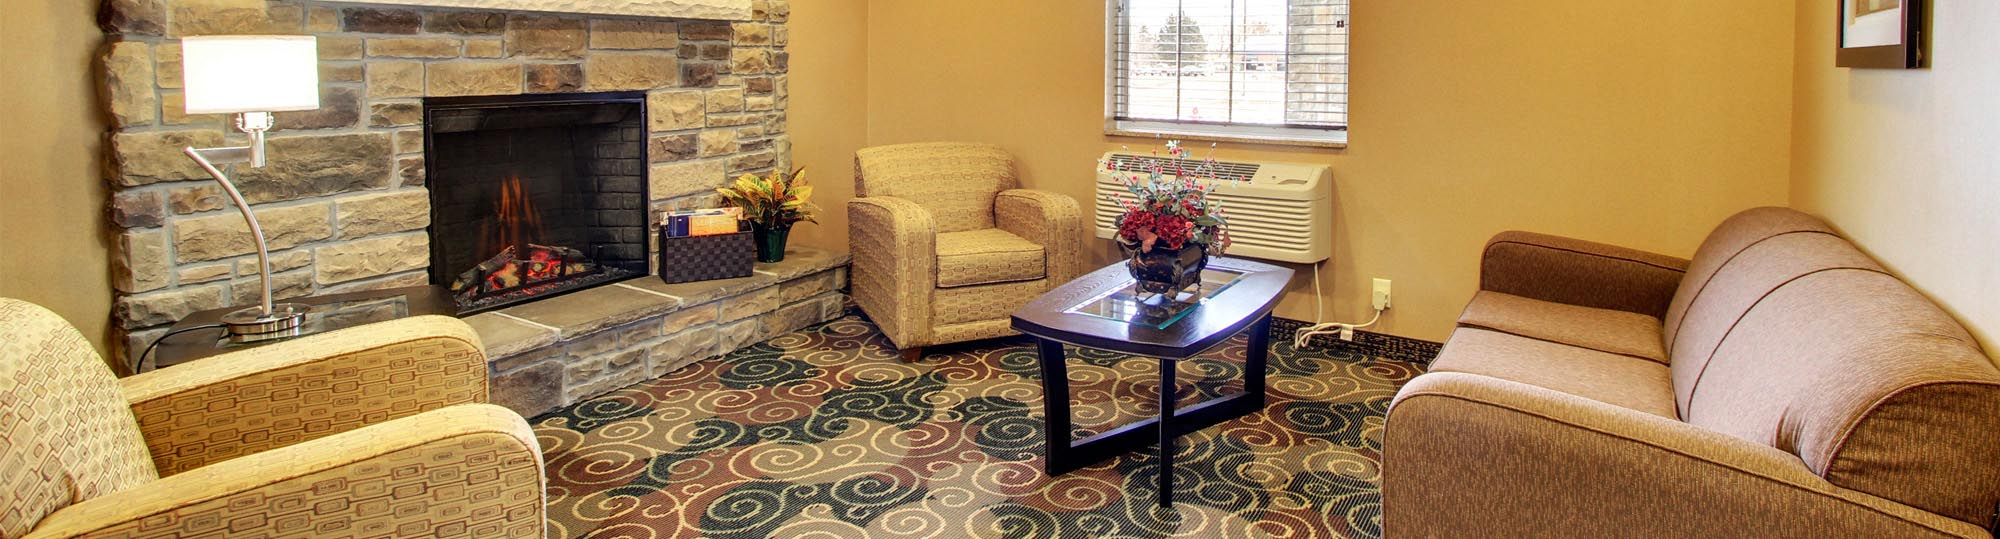 Cobblestone Inn and Suites Hartington